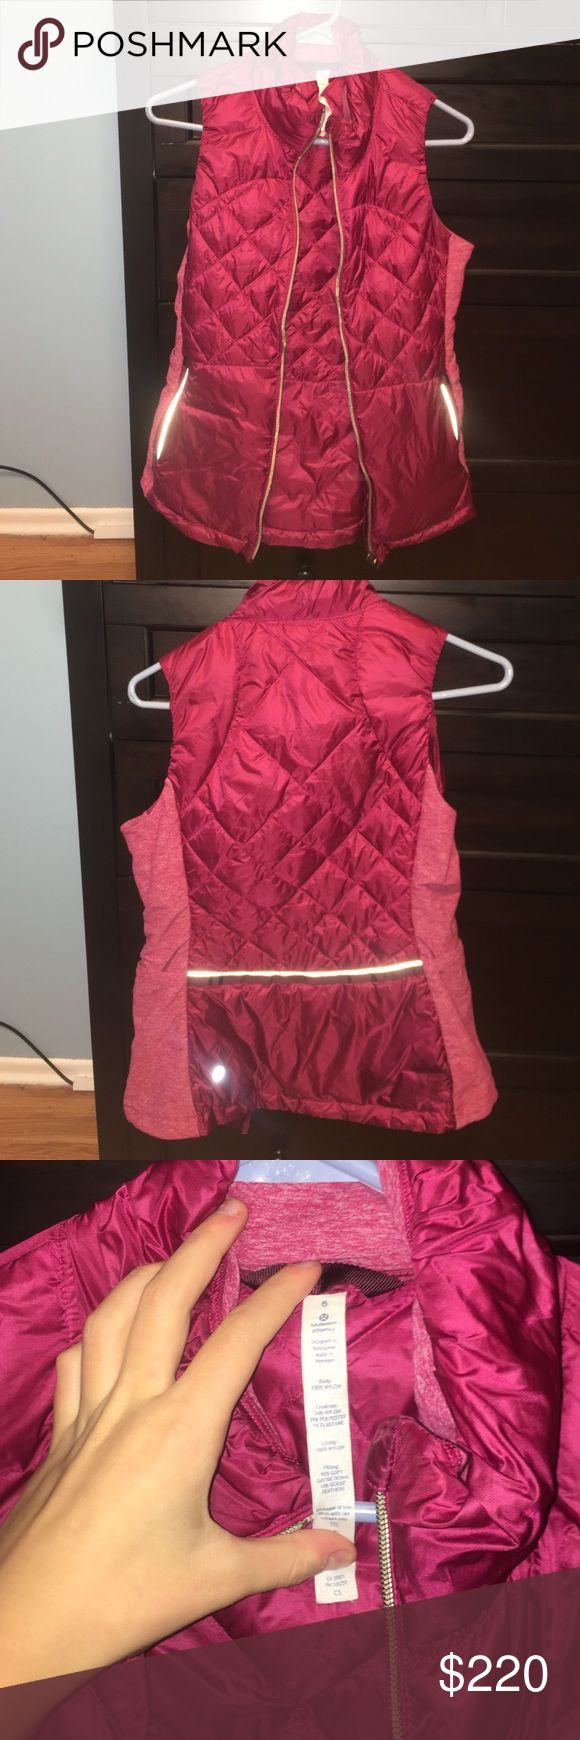 red lululemon vest this vest is sold out in stores. it is a gorgeous dark red with gold accents. it has only been work a handful of times it has absolutely no signs of piling no wear, no imperfections inside or outside whatsoever. it looks new because i honestly just never wore it. hate to part with this beaut but i am saving up.  will sell for less if i can sell on ebay or merc. well taken care of. rare lil thang. i will hold onto if i can't get what i want for it. thanks for reading…